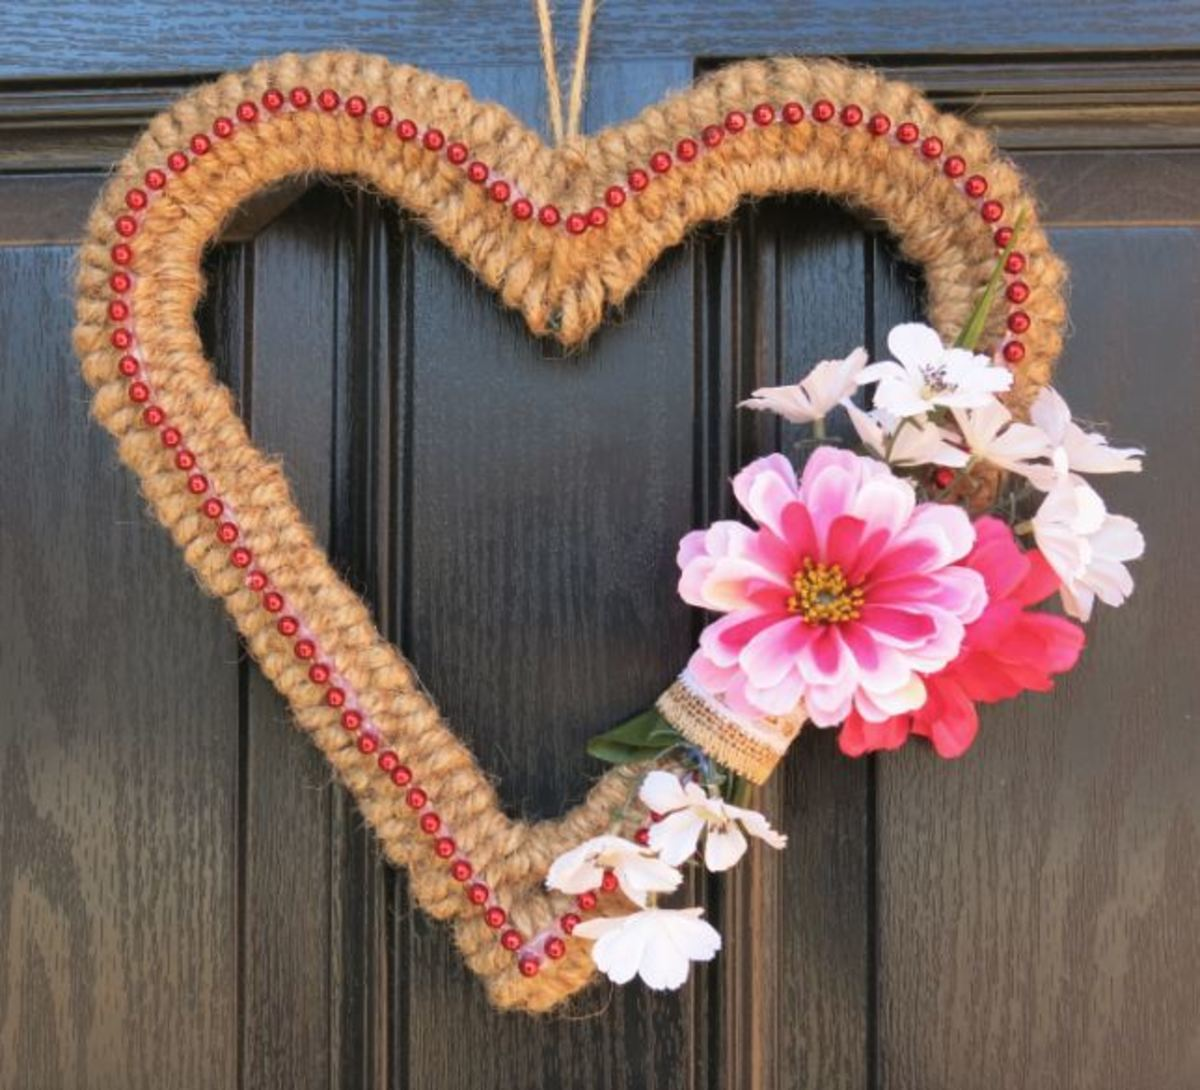 Adding Decoration to Your Wreath